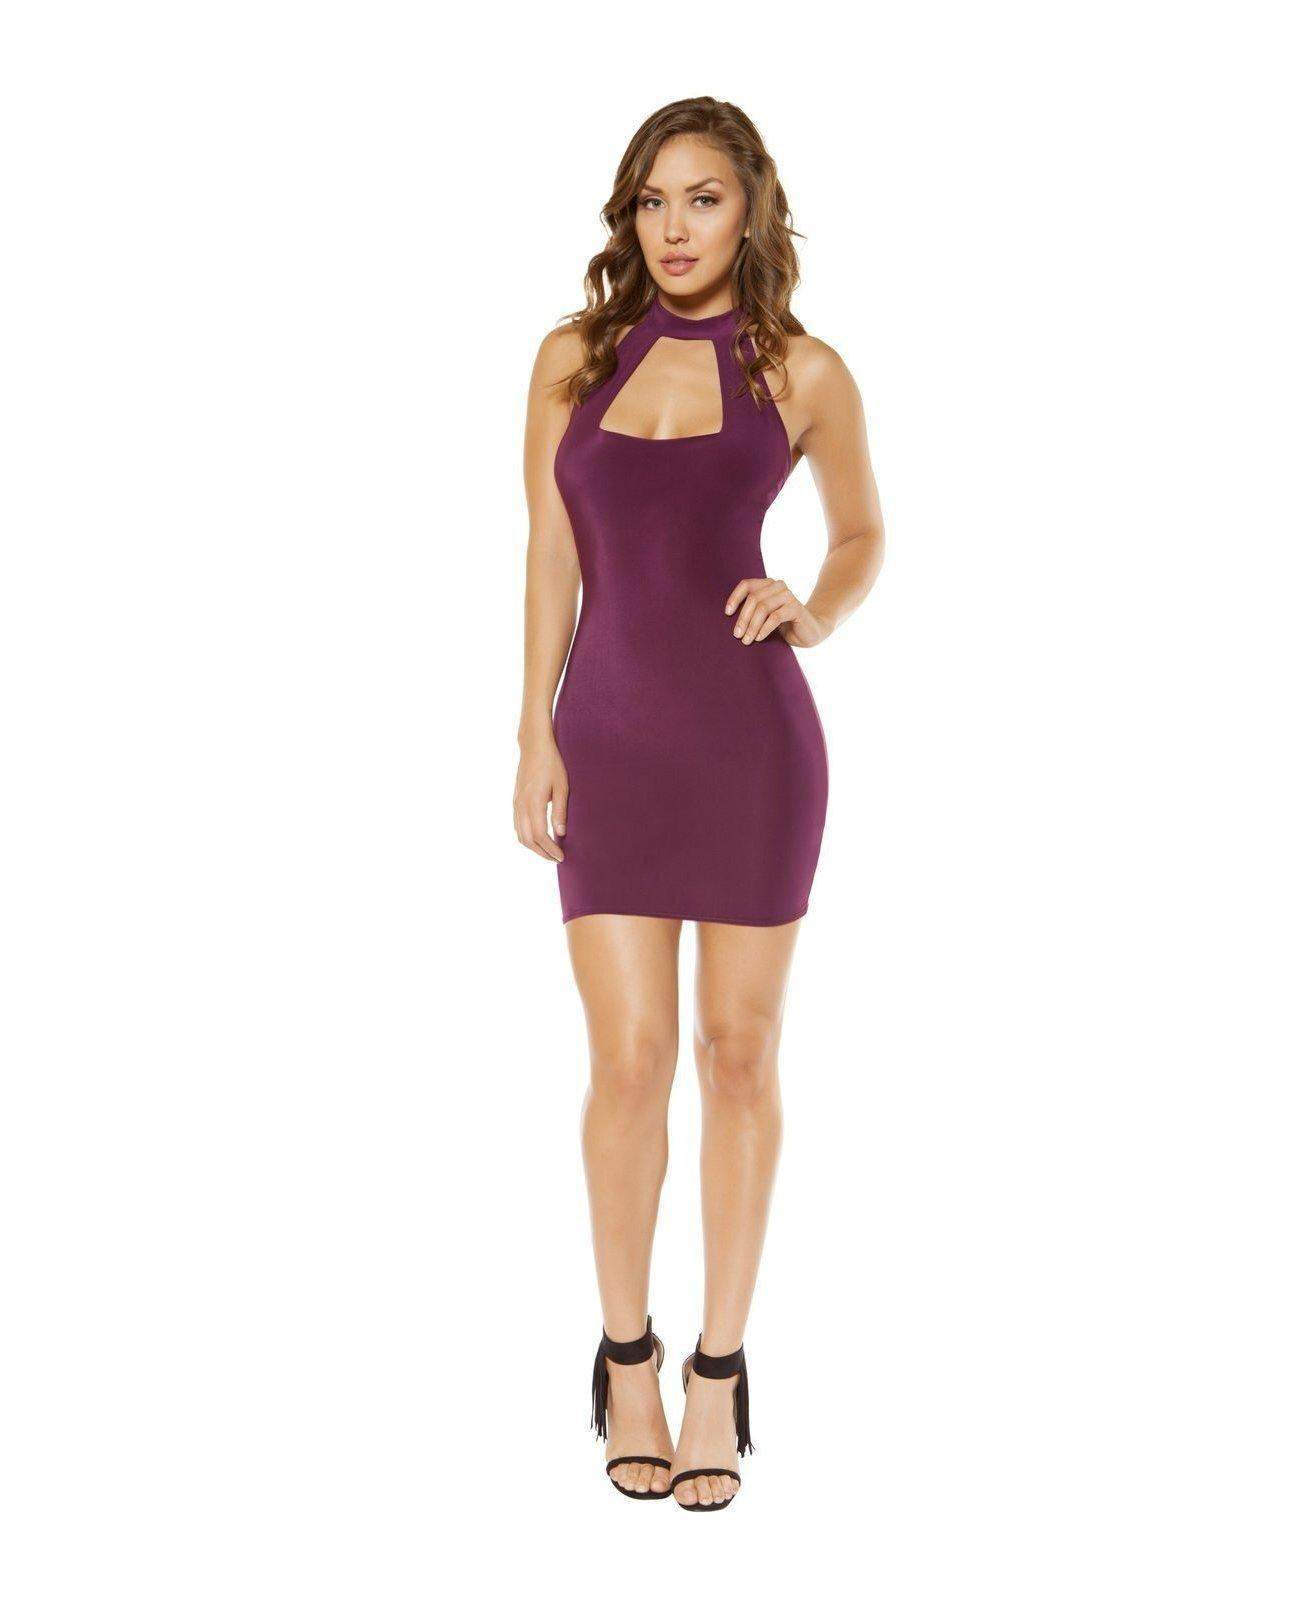 Cutout Top Mini Dress club wear Size small color plum Nakees